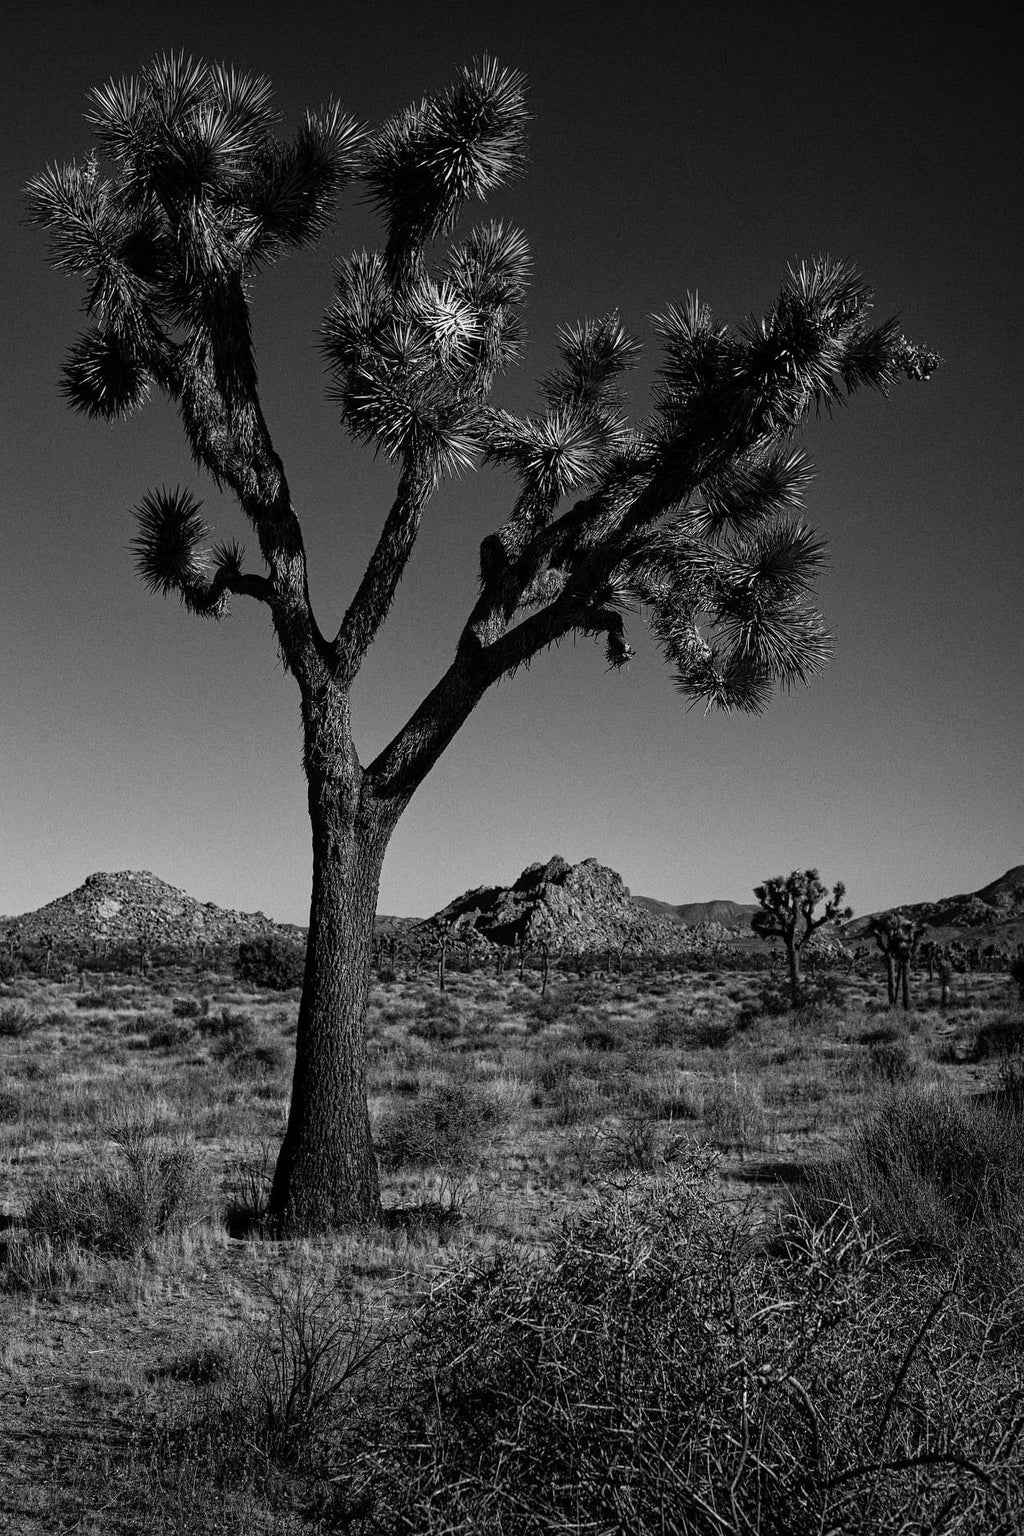 Joshua Tree National Park 1, California